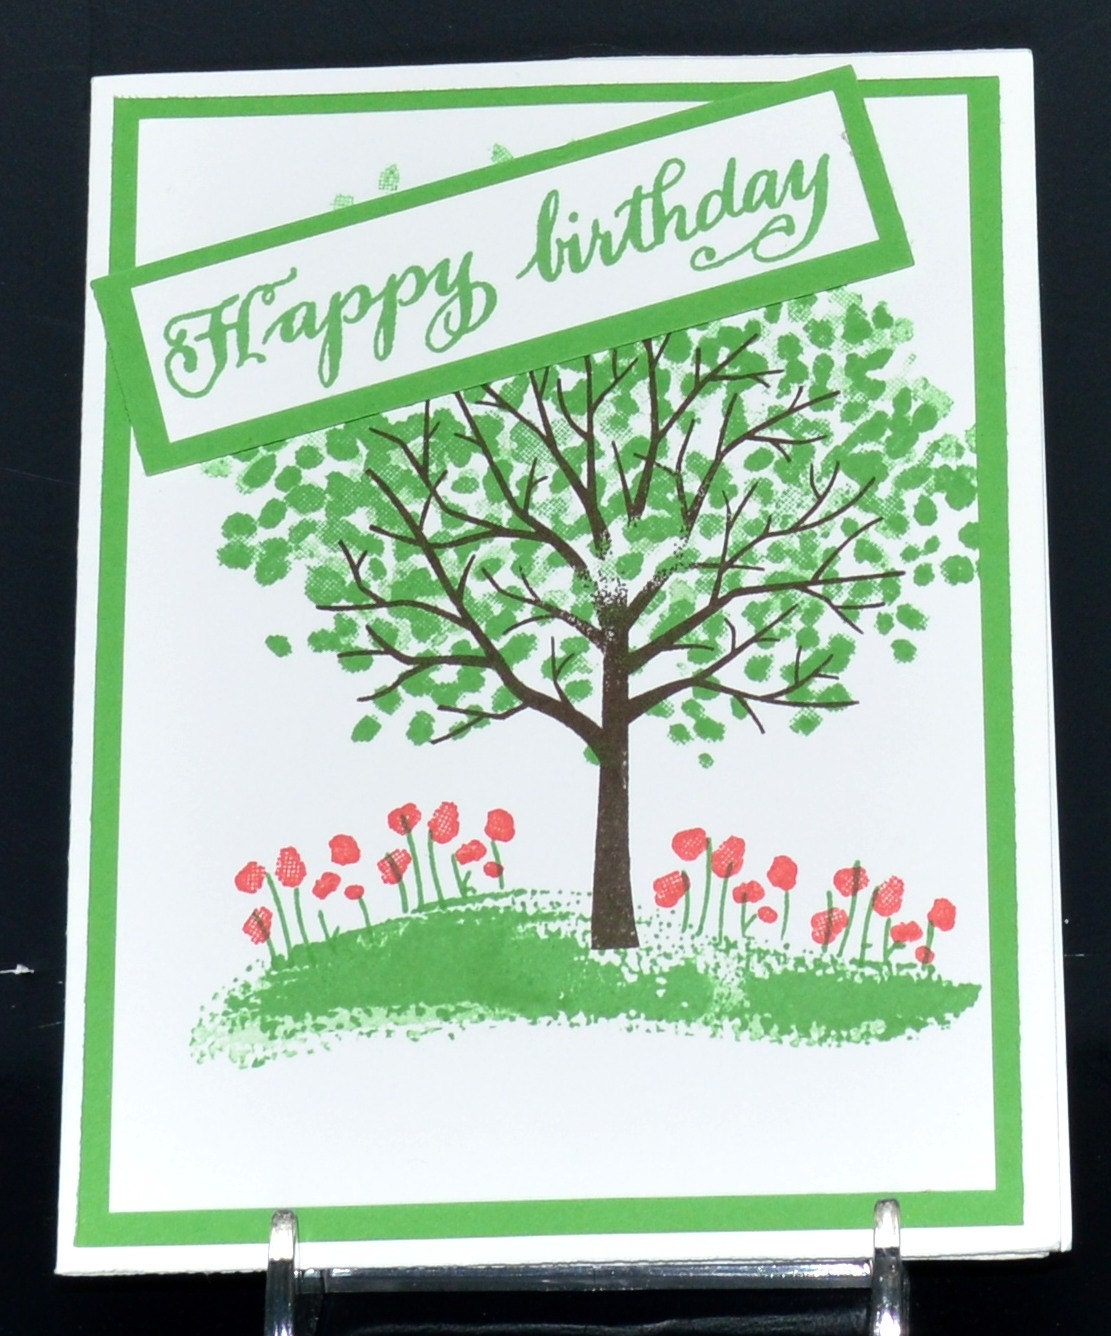 Sale birthday card buy 3 cards and the 4th one is free stamping sale birthday card buy 3 cards and the 4th one is free stamping m4hsunfo